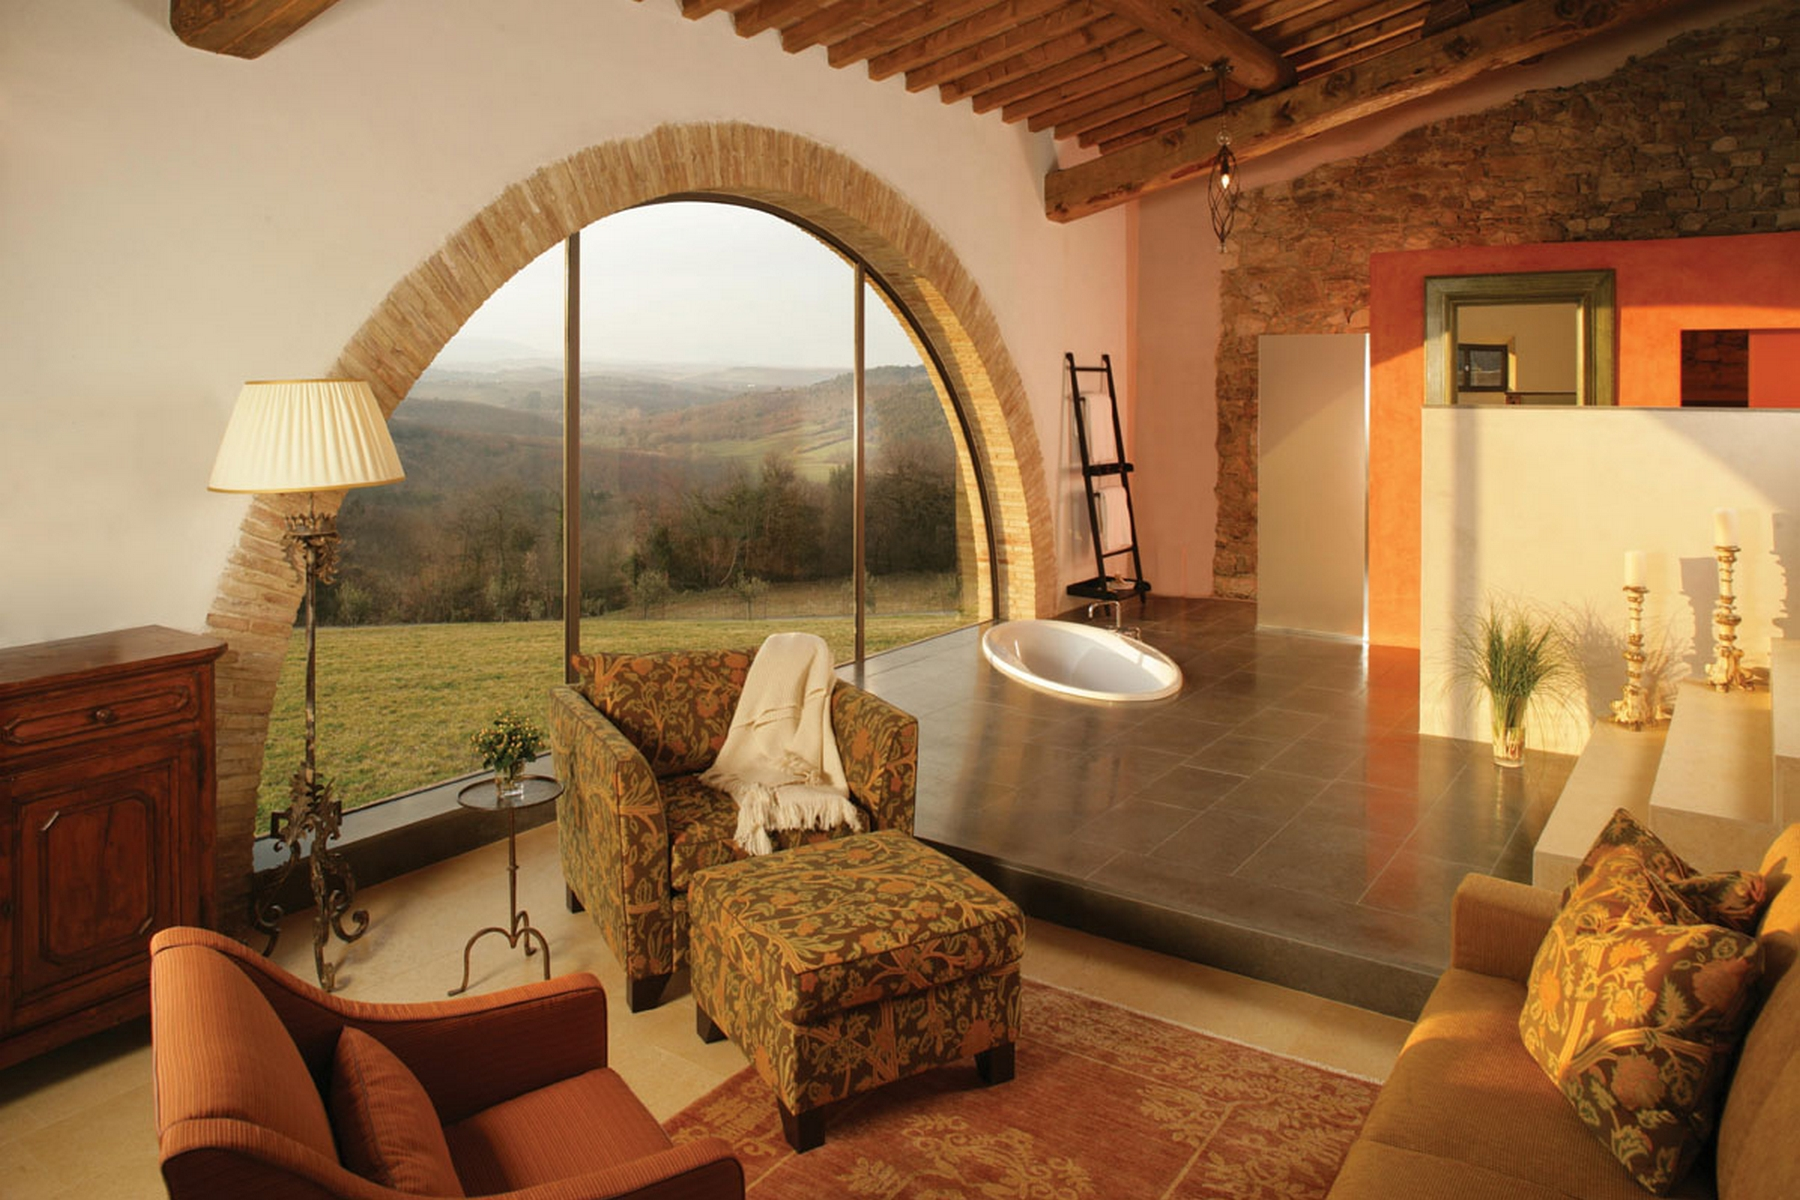 Additional photo for property listing at Tuscany luxury lifestyle homes Casole D'Elsa Casole D Elsa, Siena 53031 Italie